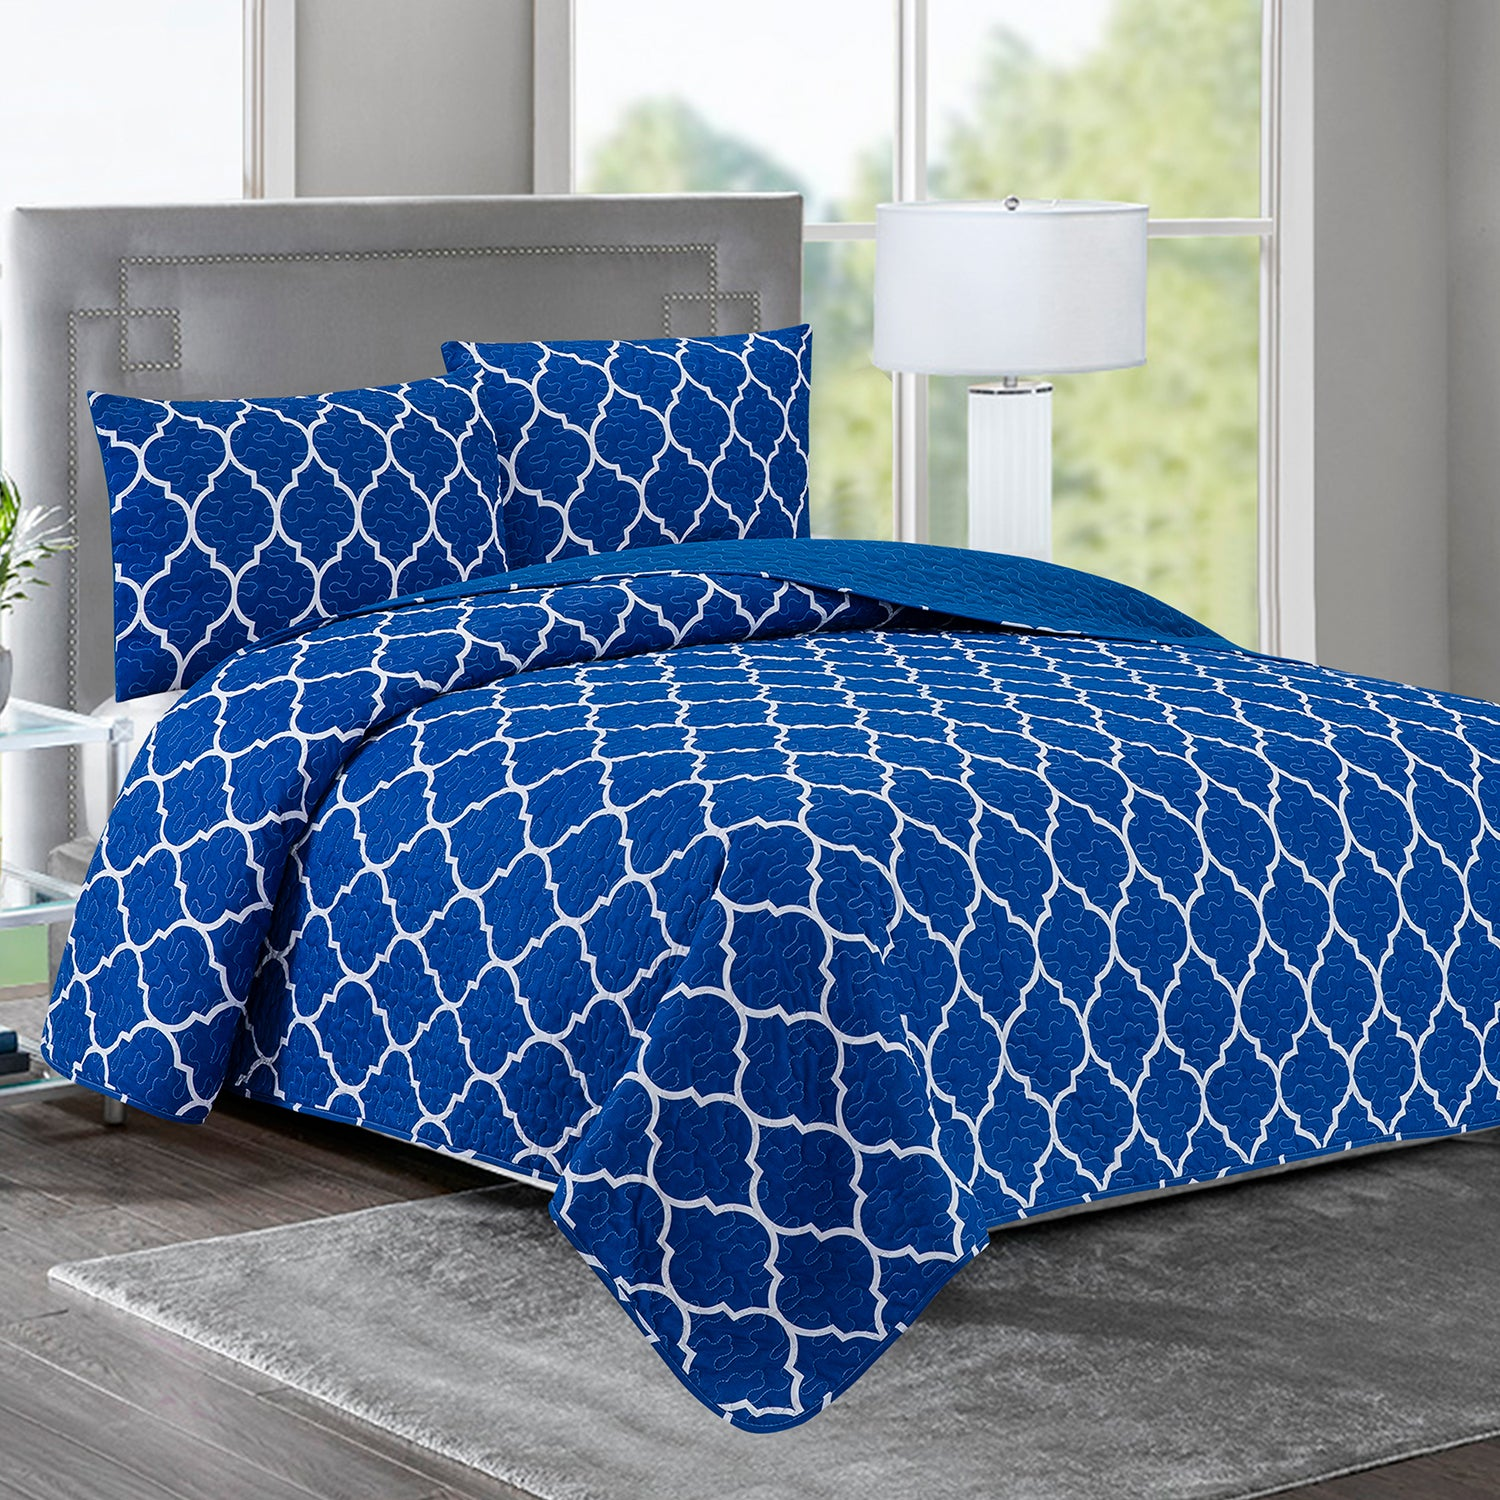 Elisa - 3 Piece Reversible Quilt Set - Blue Geometric - Glory Home Design